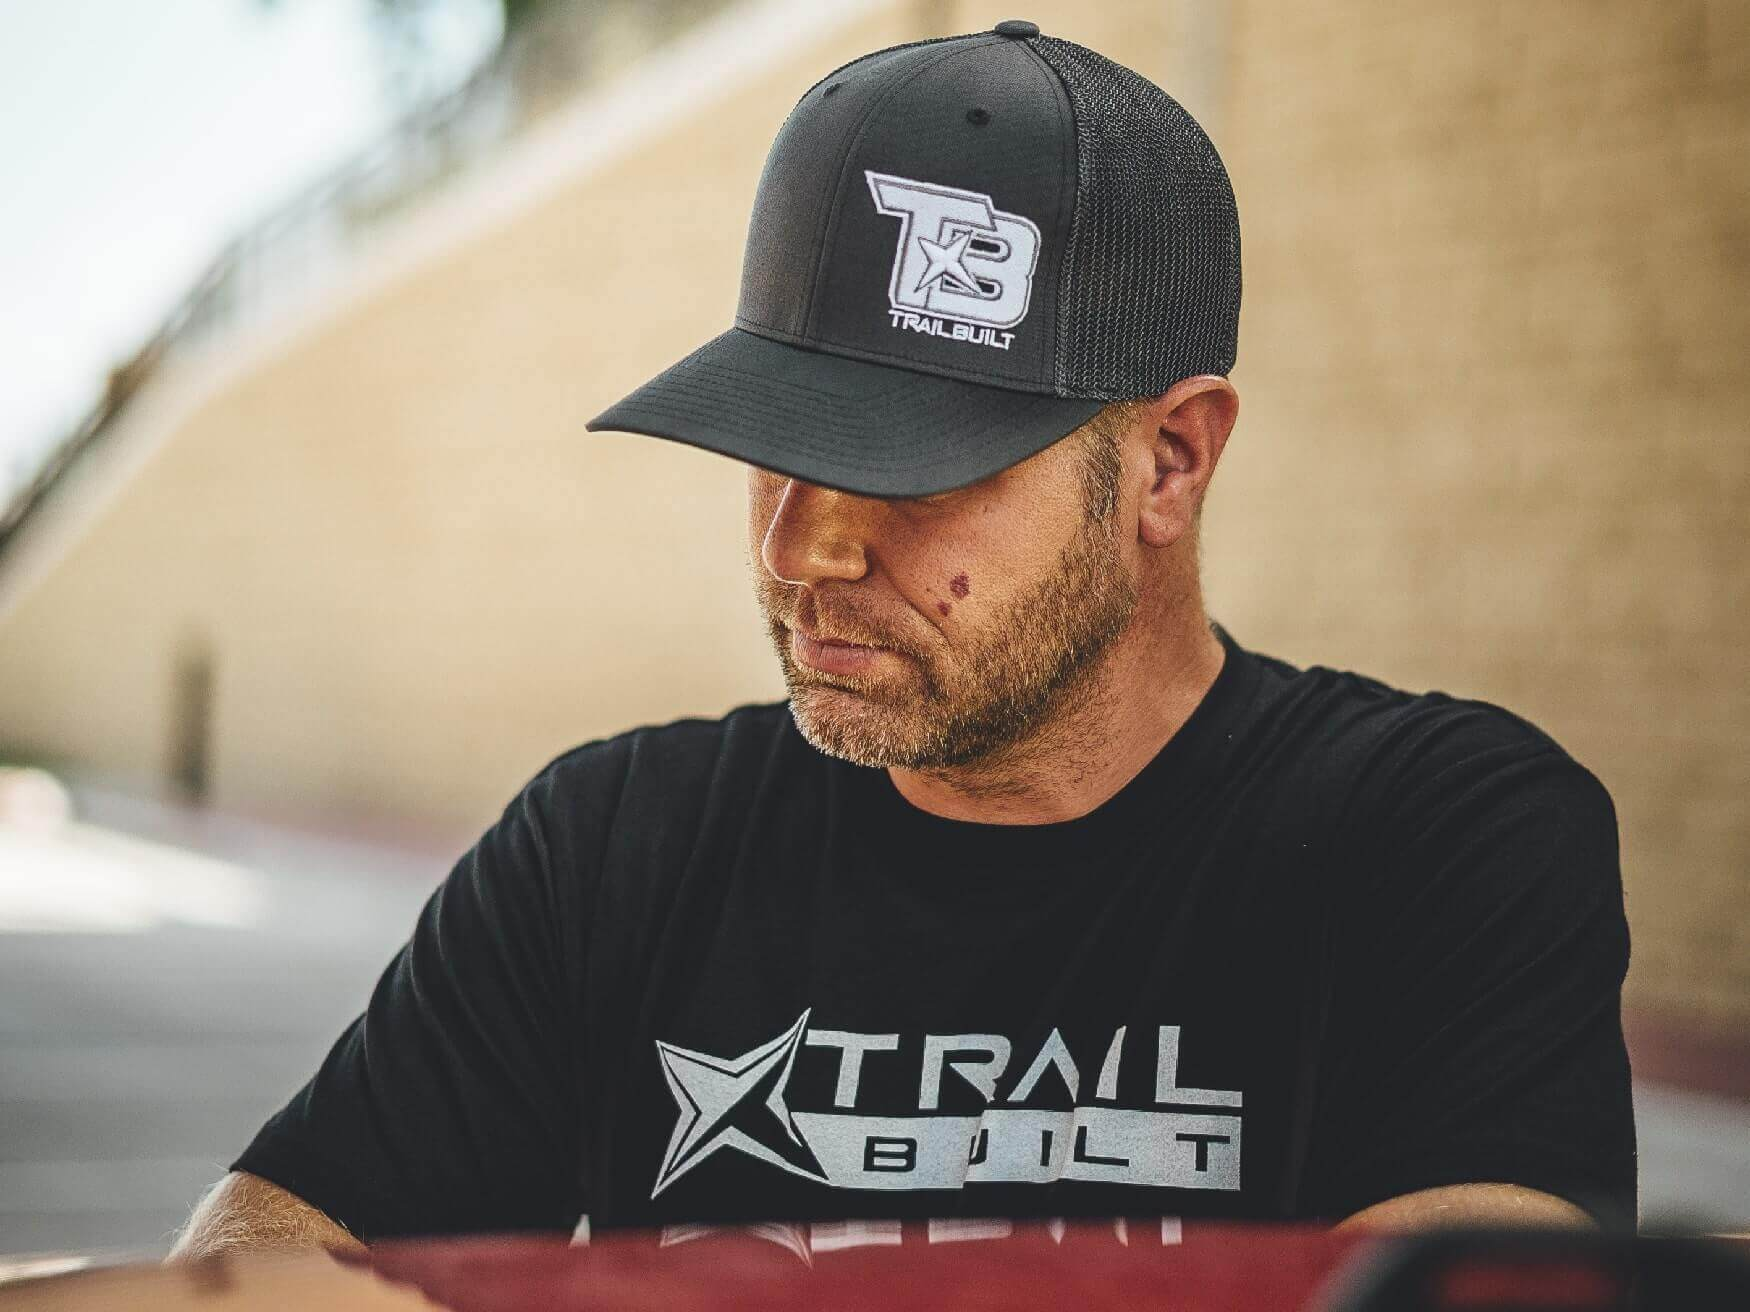 TrailBuilt Apparel